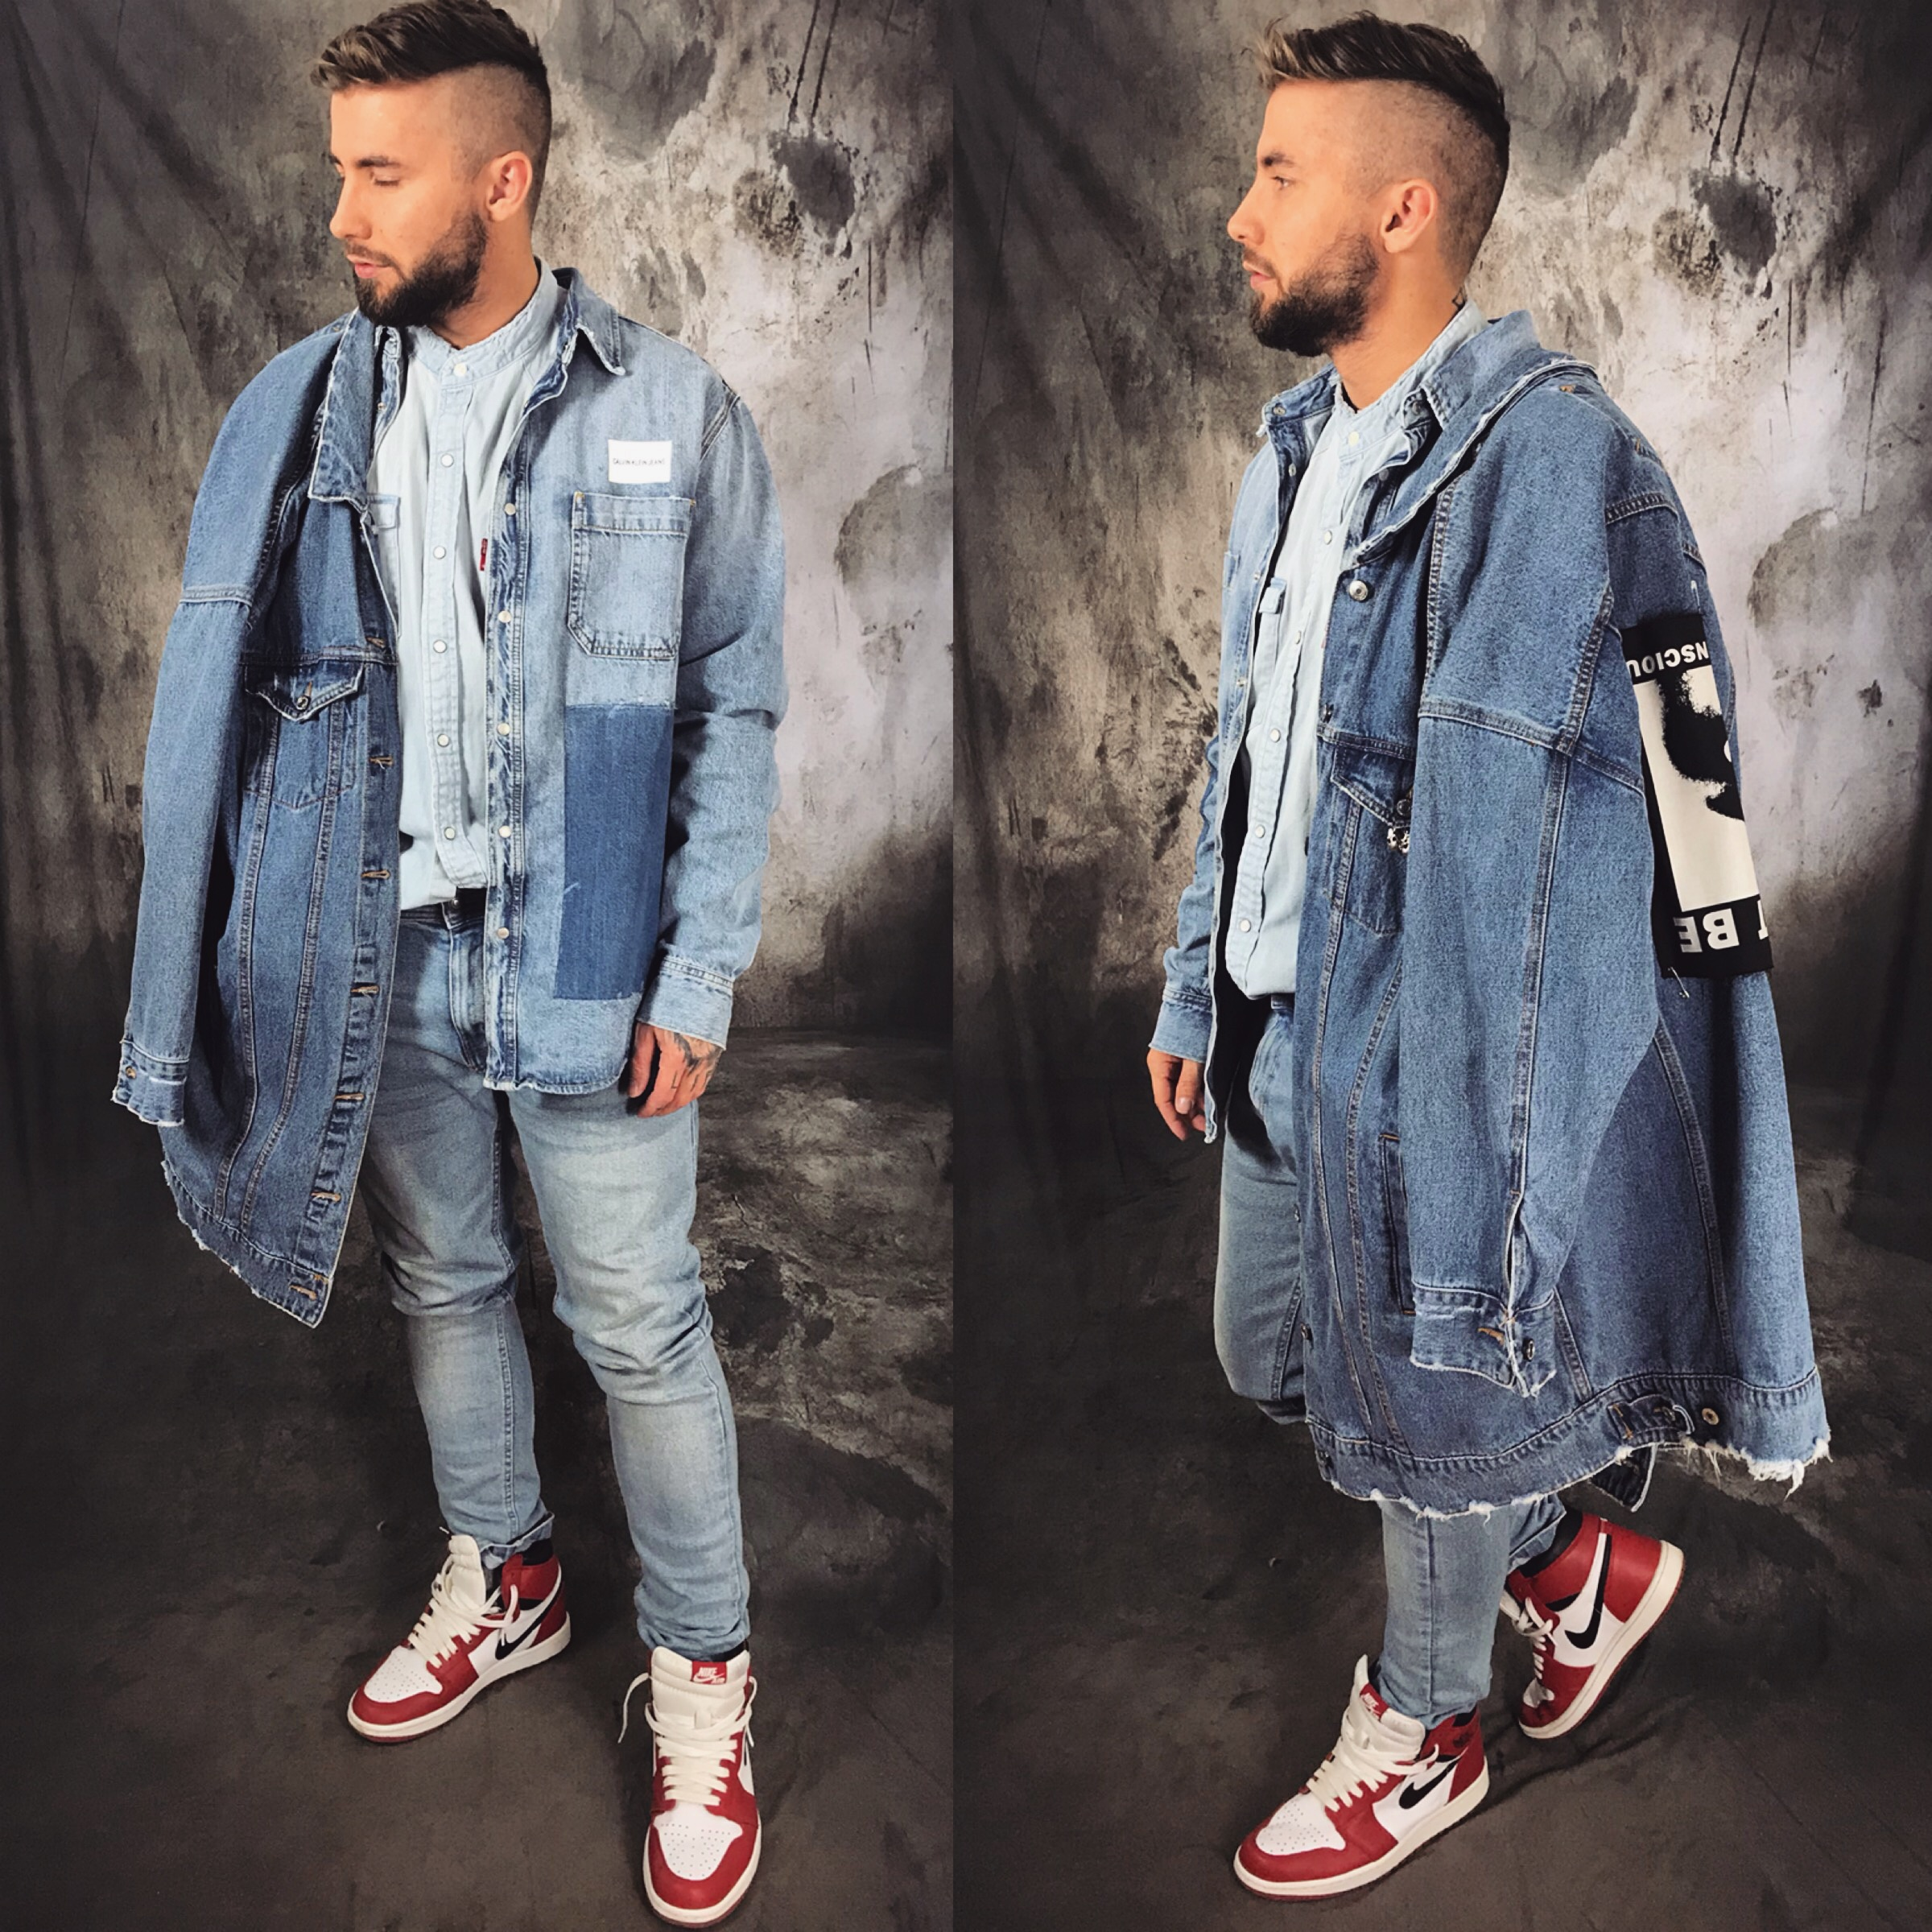 Rote schuhe outfit herren